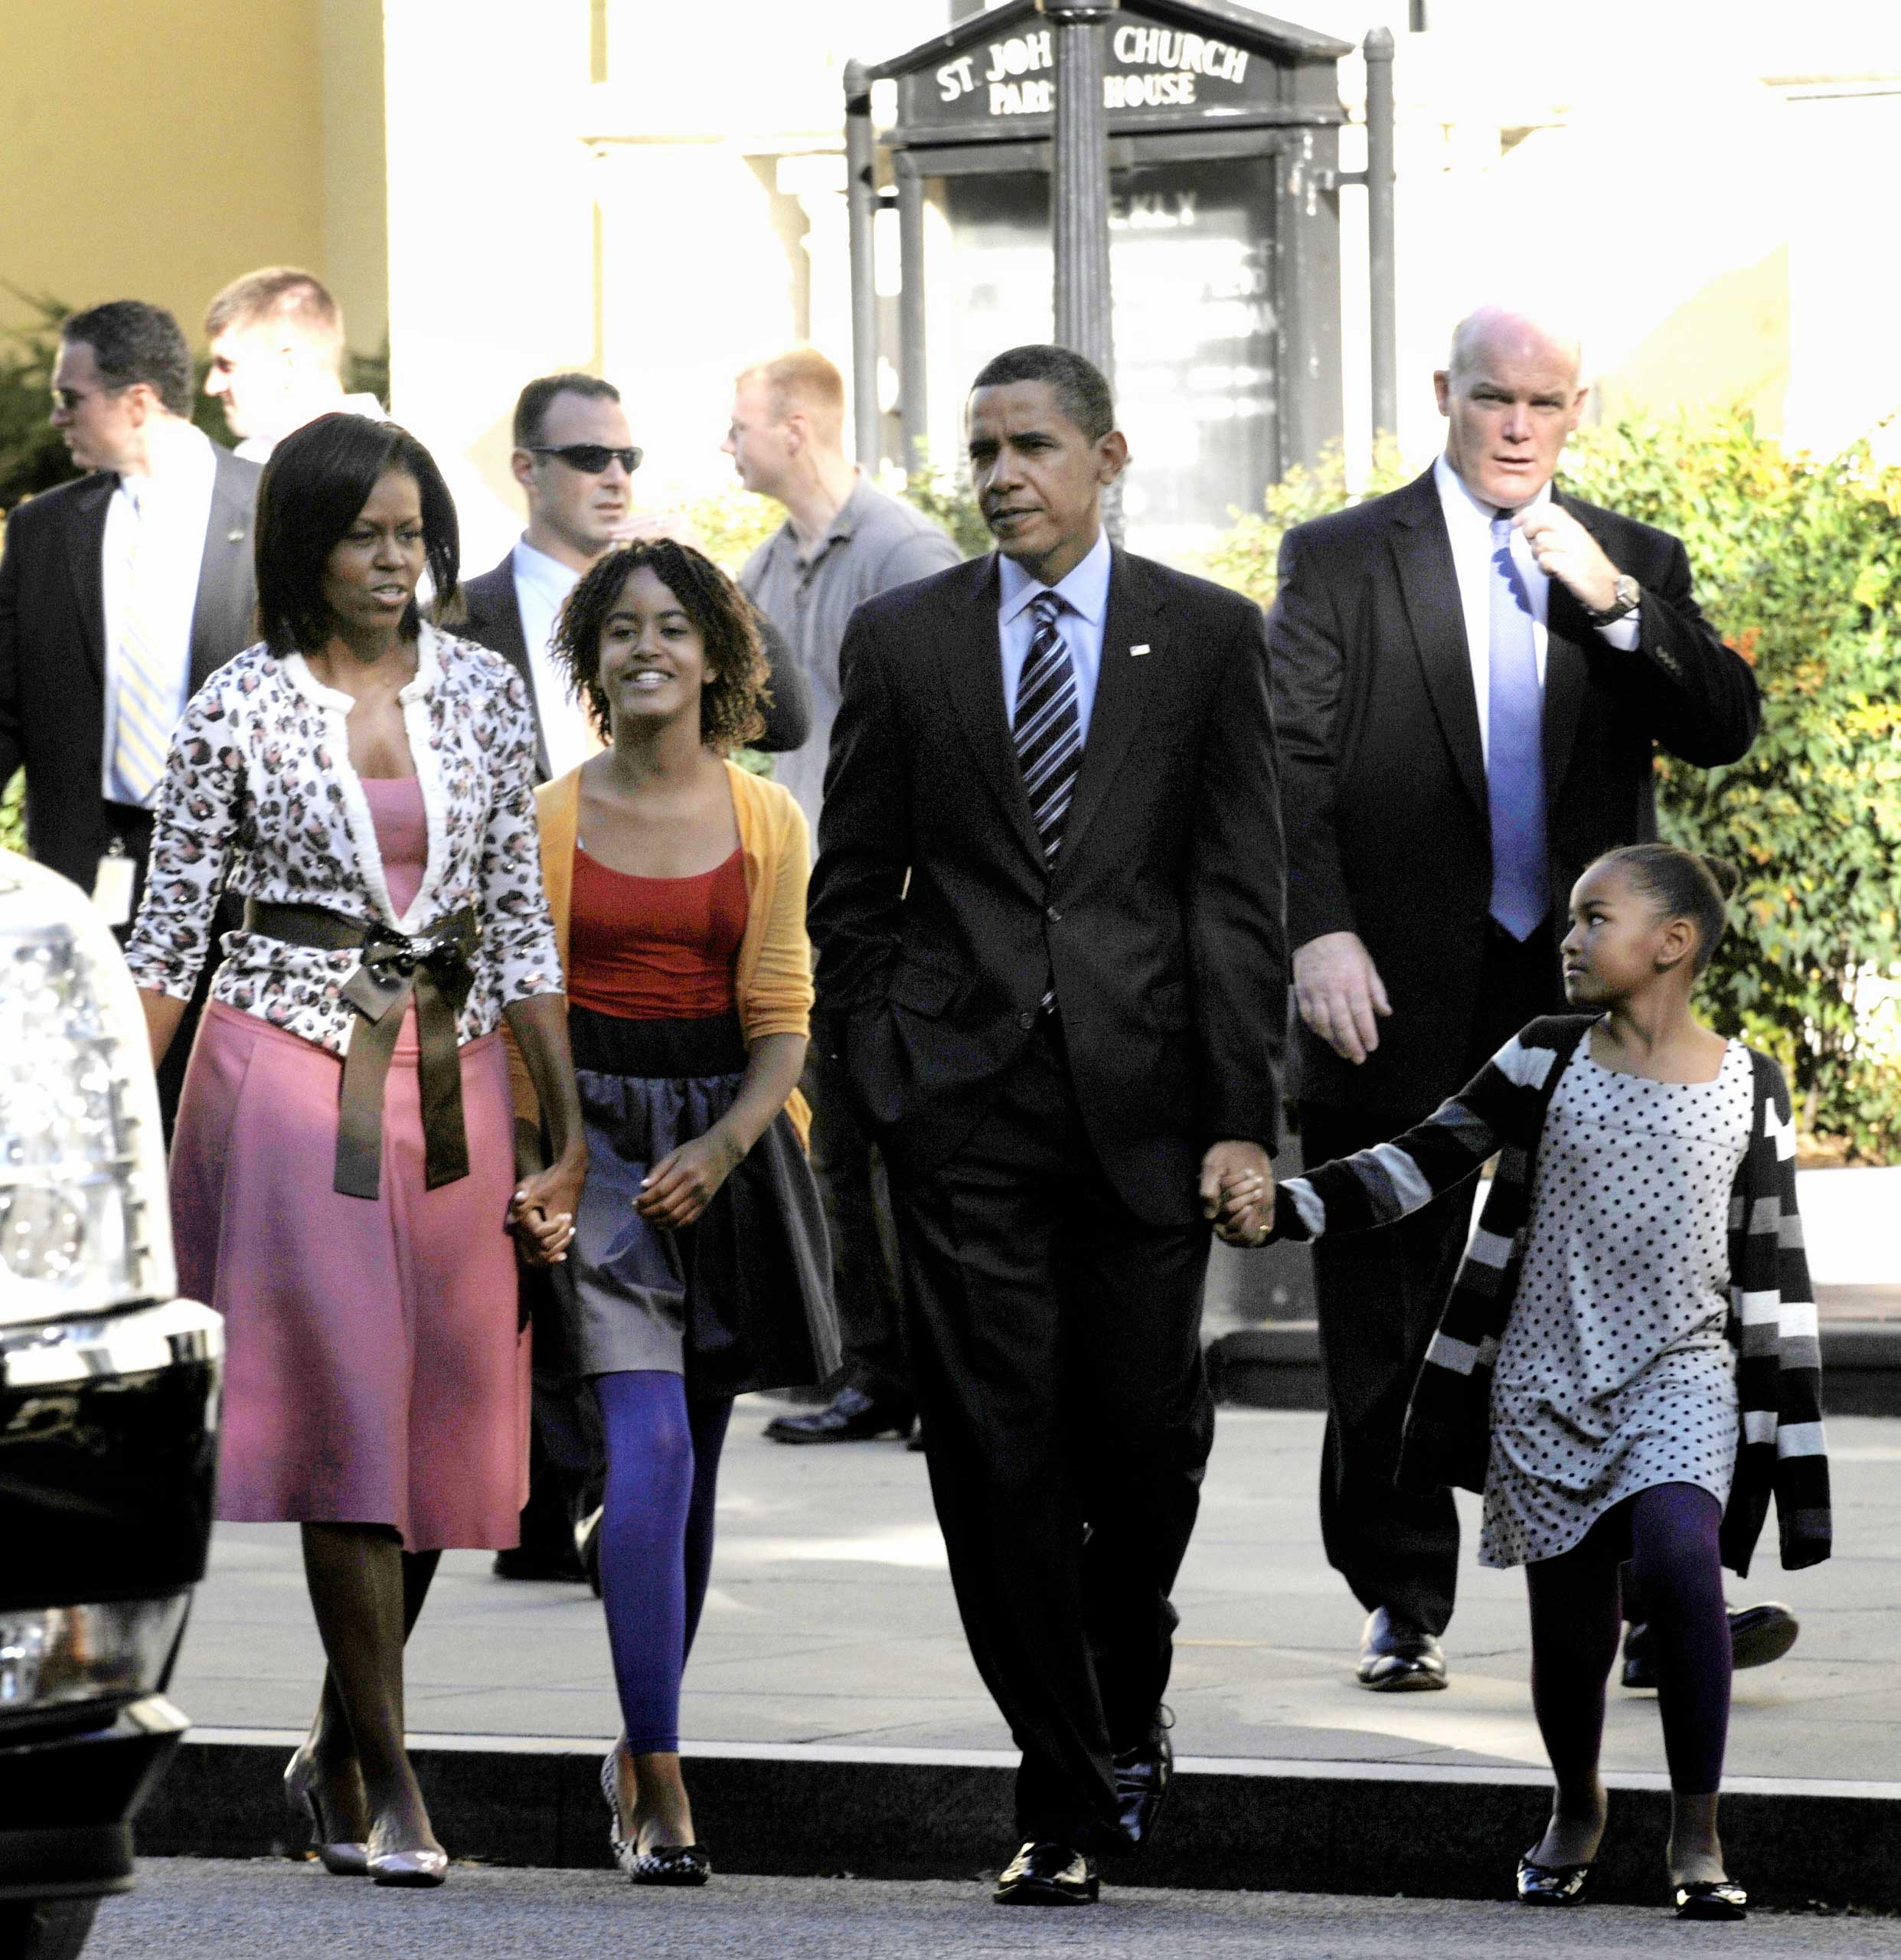 Clancy is seen speaking over the radio into his palm mic as he glances in the camera's direction as  President Barack Obama and his family walk back to the White House after attending St. John's Episcopal Church in Washington D.C. on Oct. 11, 2009.